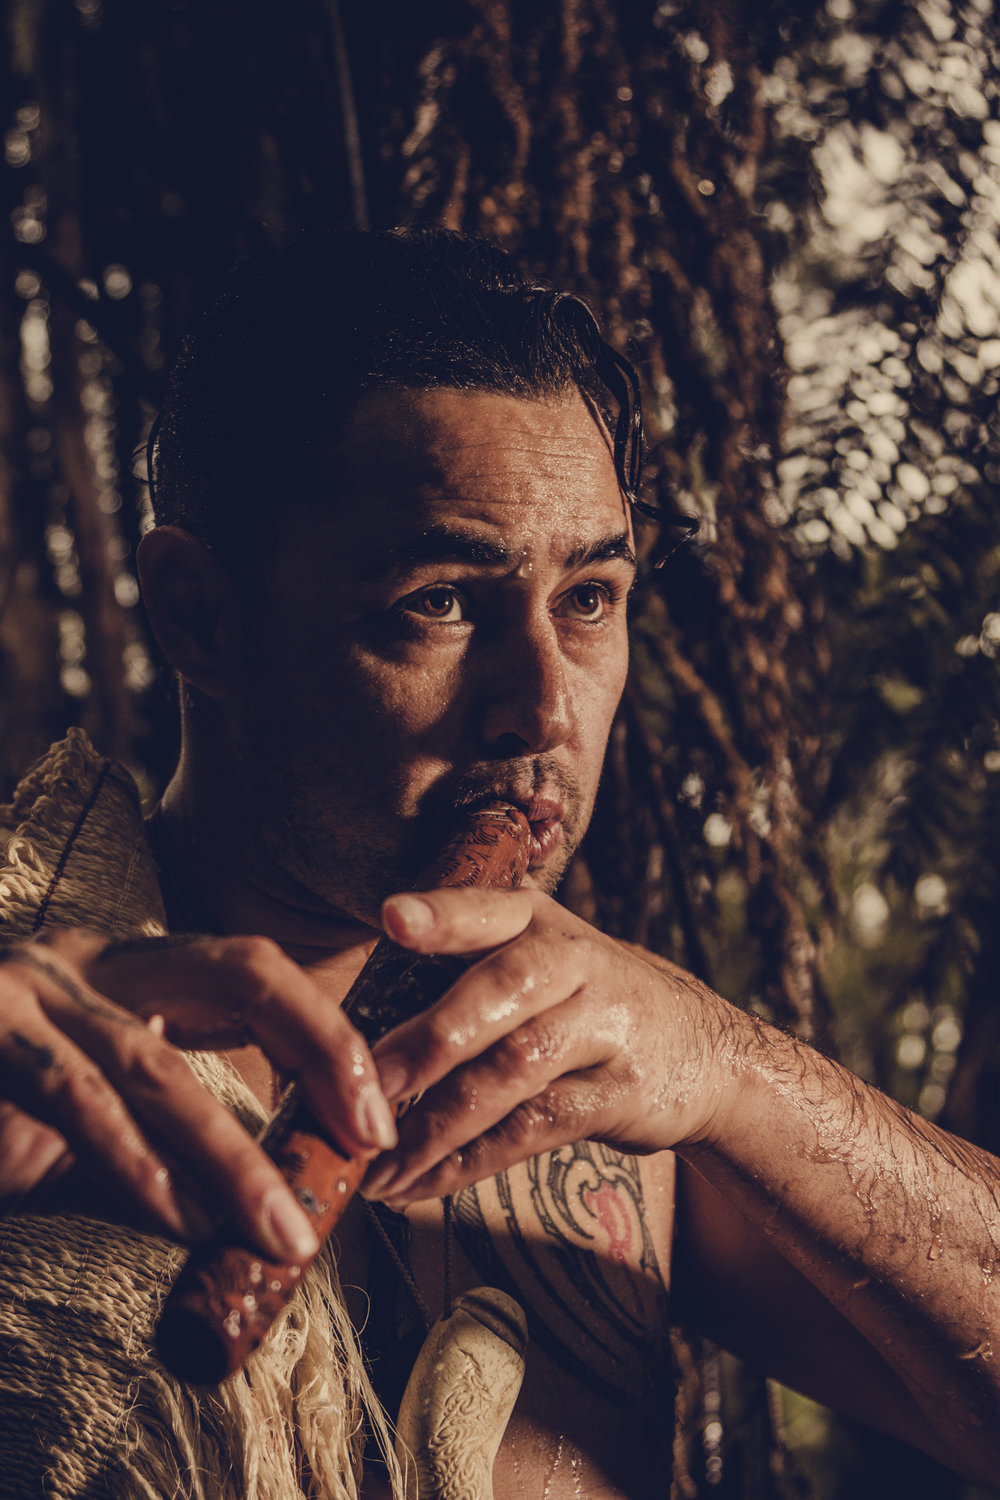 Be treated to an intimate live music performance by grammy award winning featured solo artist and taonga puoro (ancient Māori musical instrument) specialist,  Jerome Kavanagh .